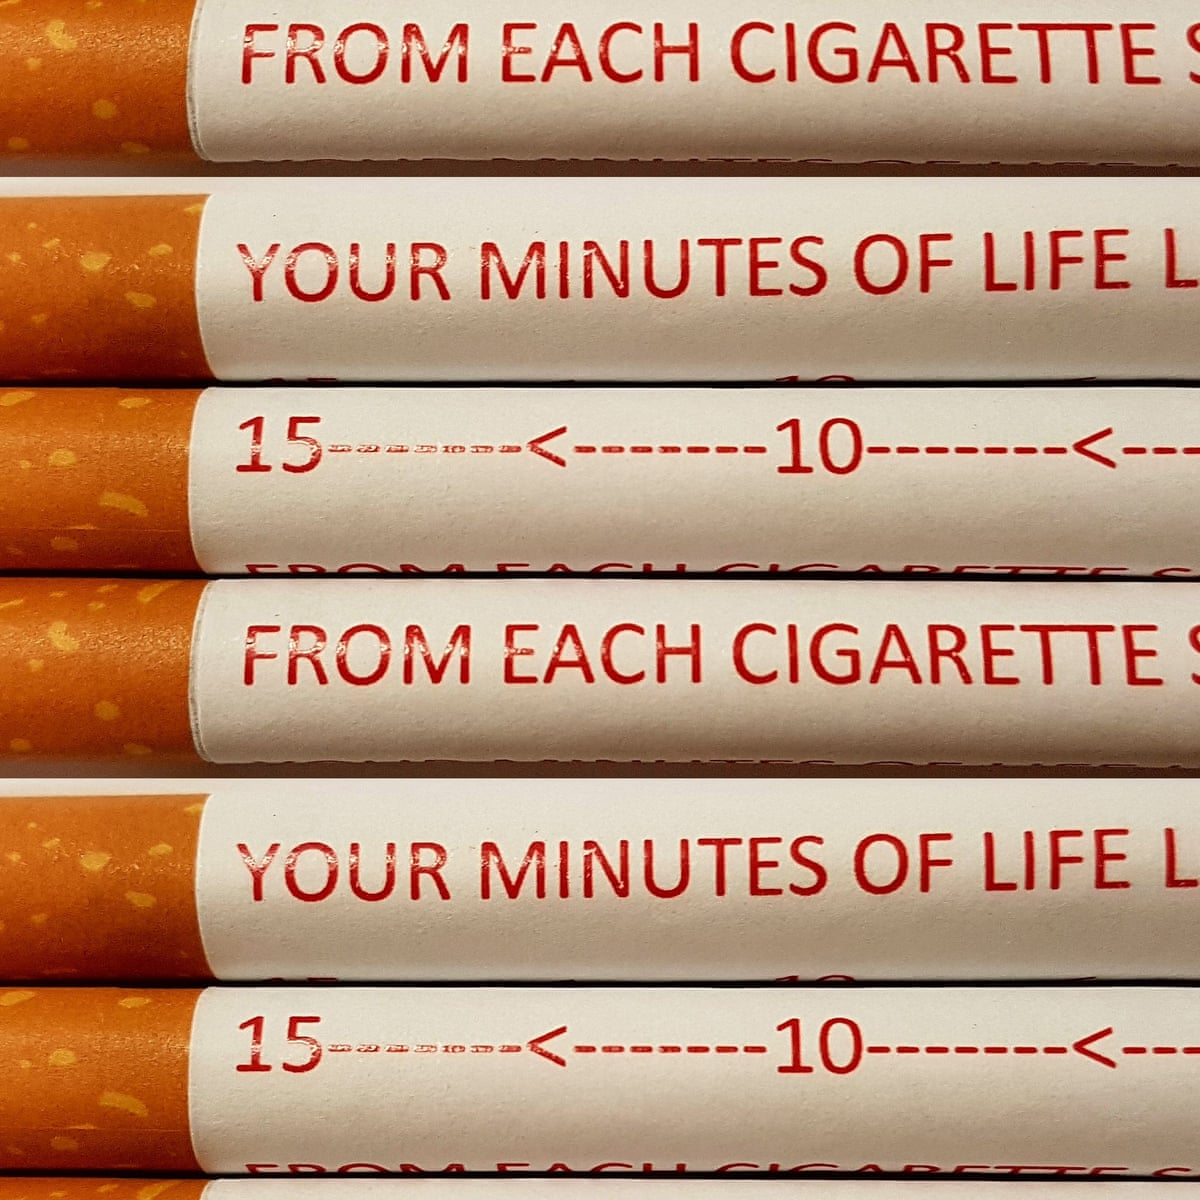 Next Level Health Campaign Warnings On Individual Cigarettes To